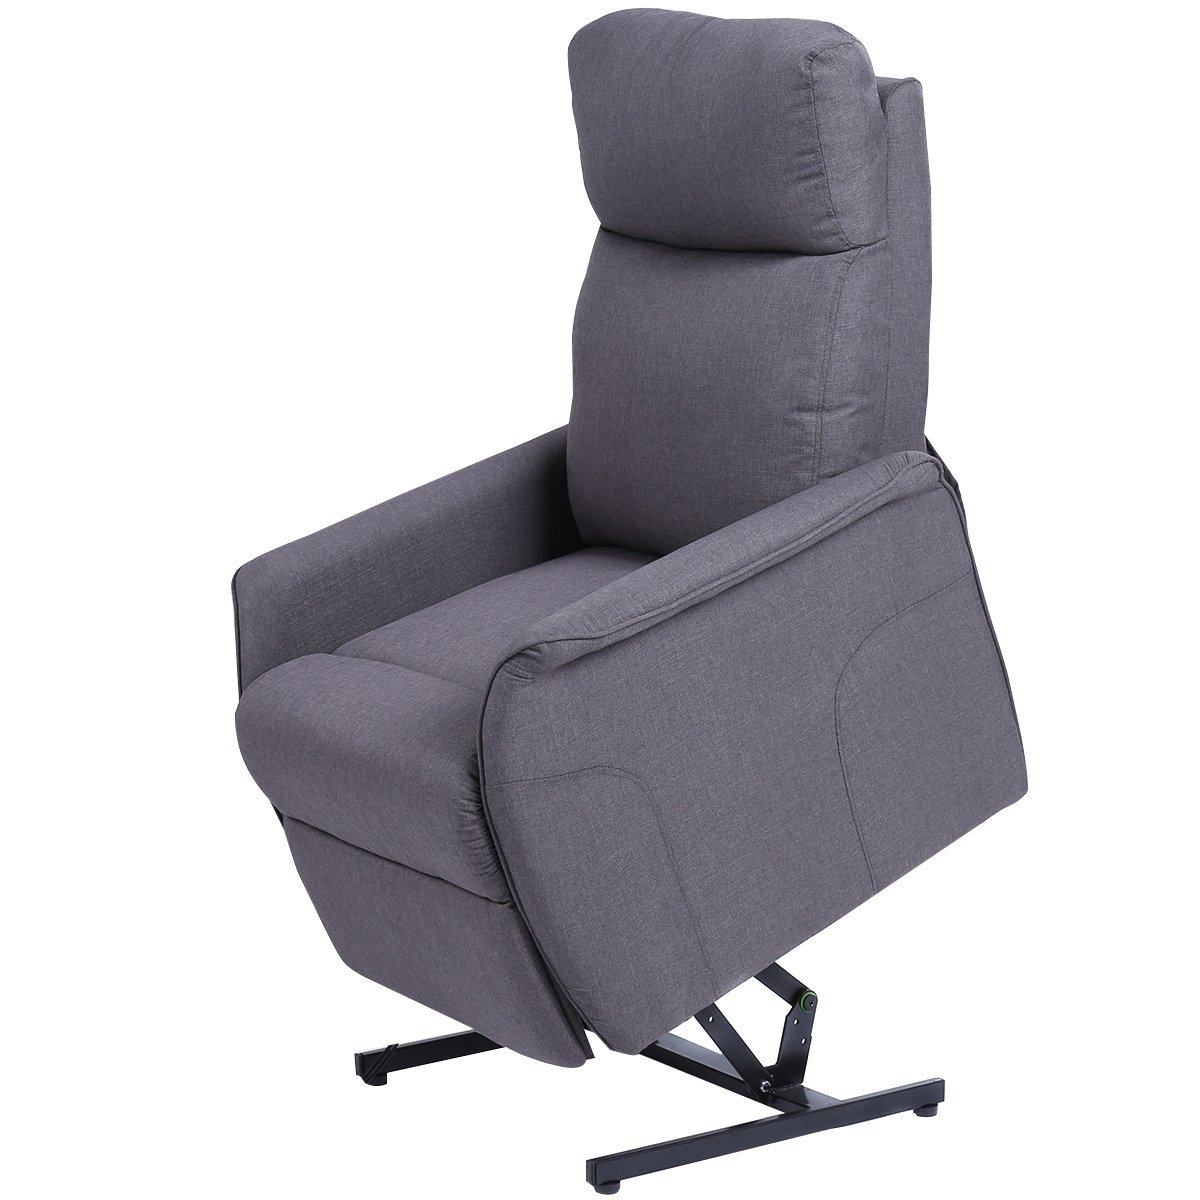 New MTN-G Electric Power Lift Chair Recliner Sofa Chair With Fabric Padded Seat  sc 1 st  Walmart & Recliner Chair Lift islam-shia.org